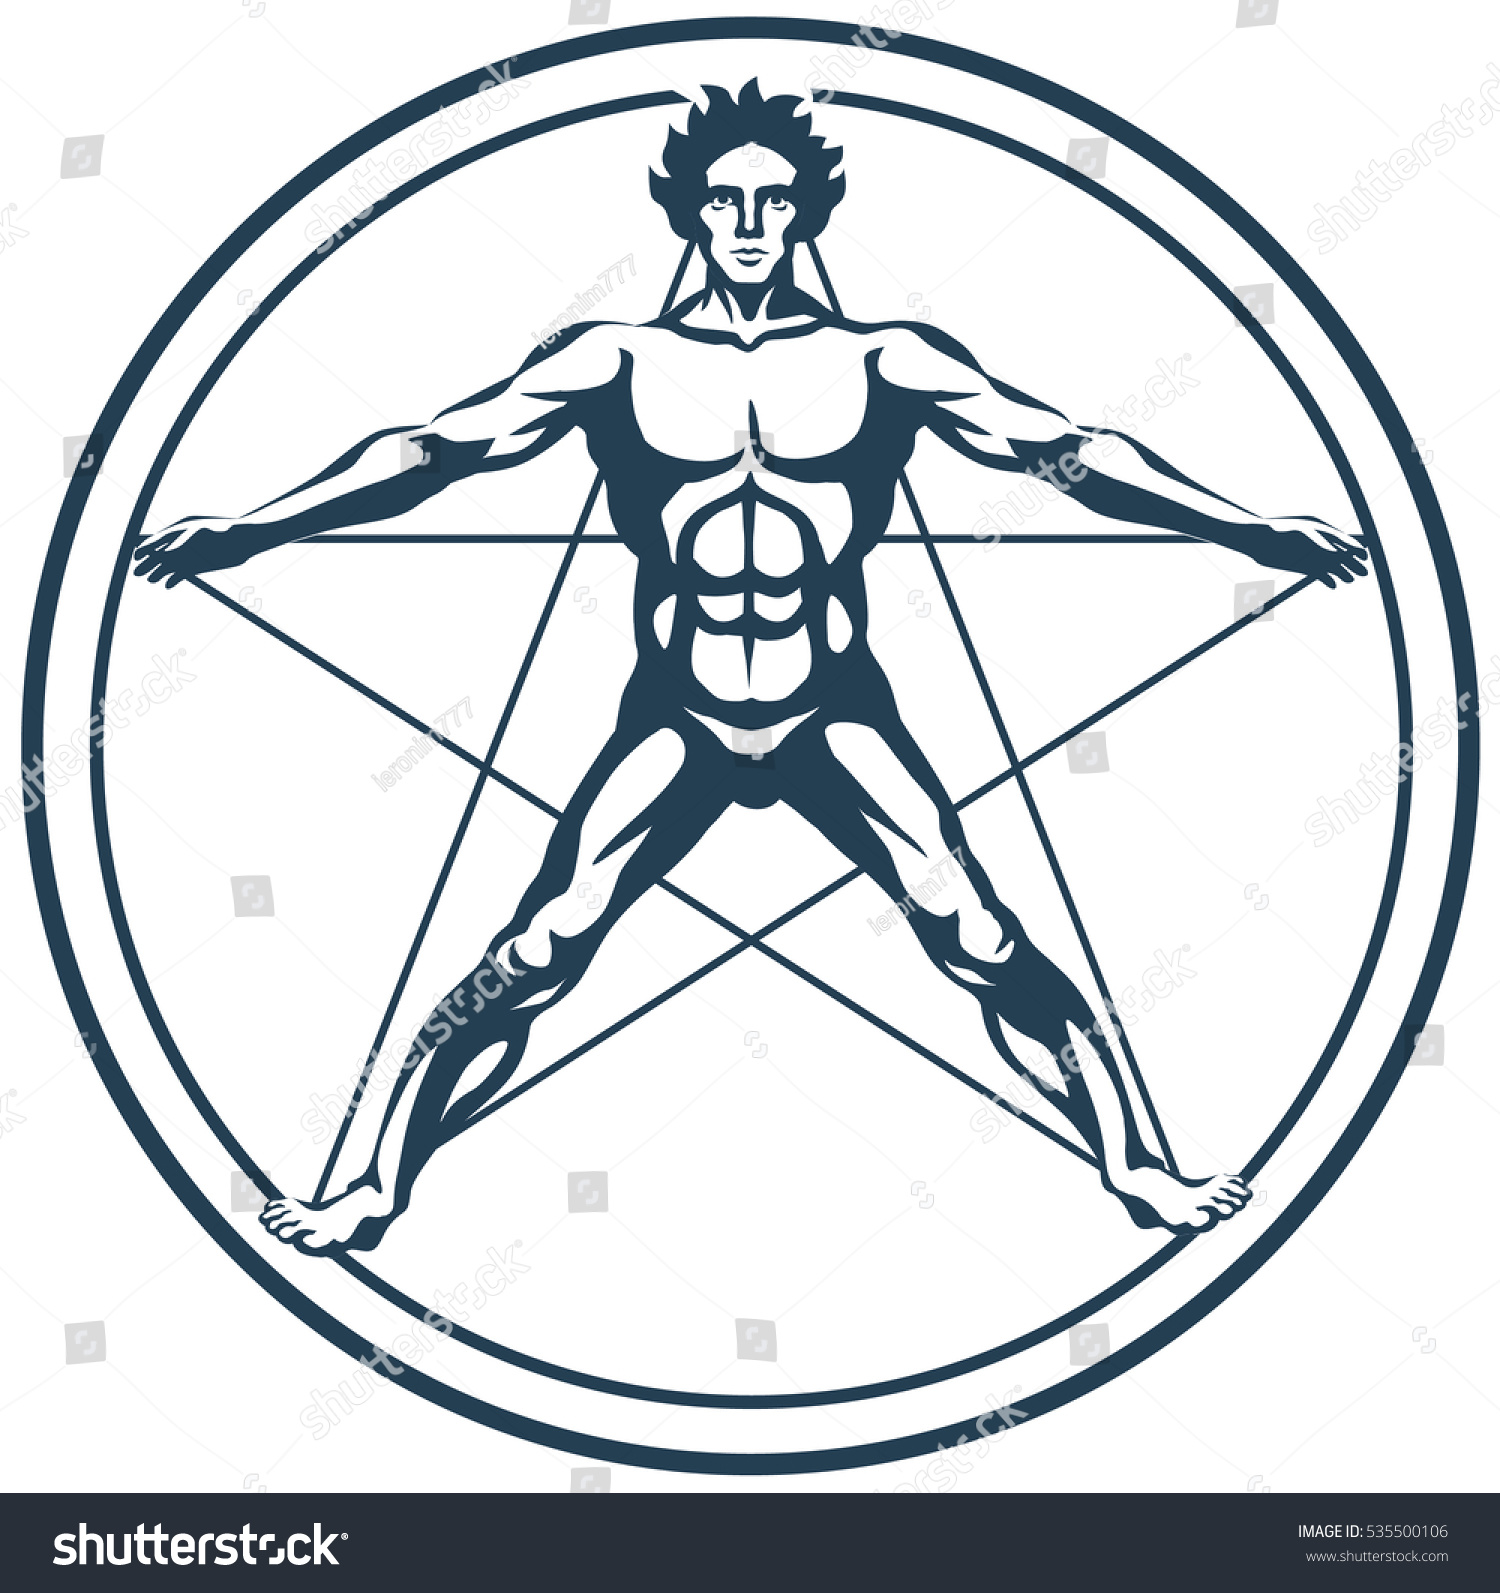 Graphic Illustration Figure Man Inscribed Circle Stock Vector ...